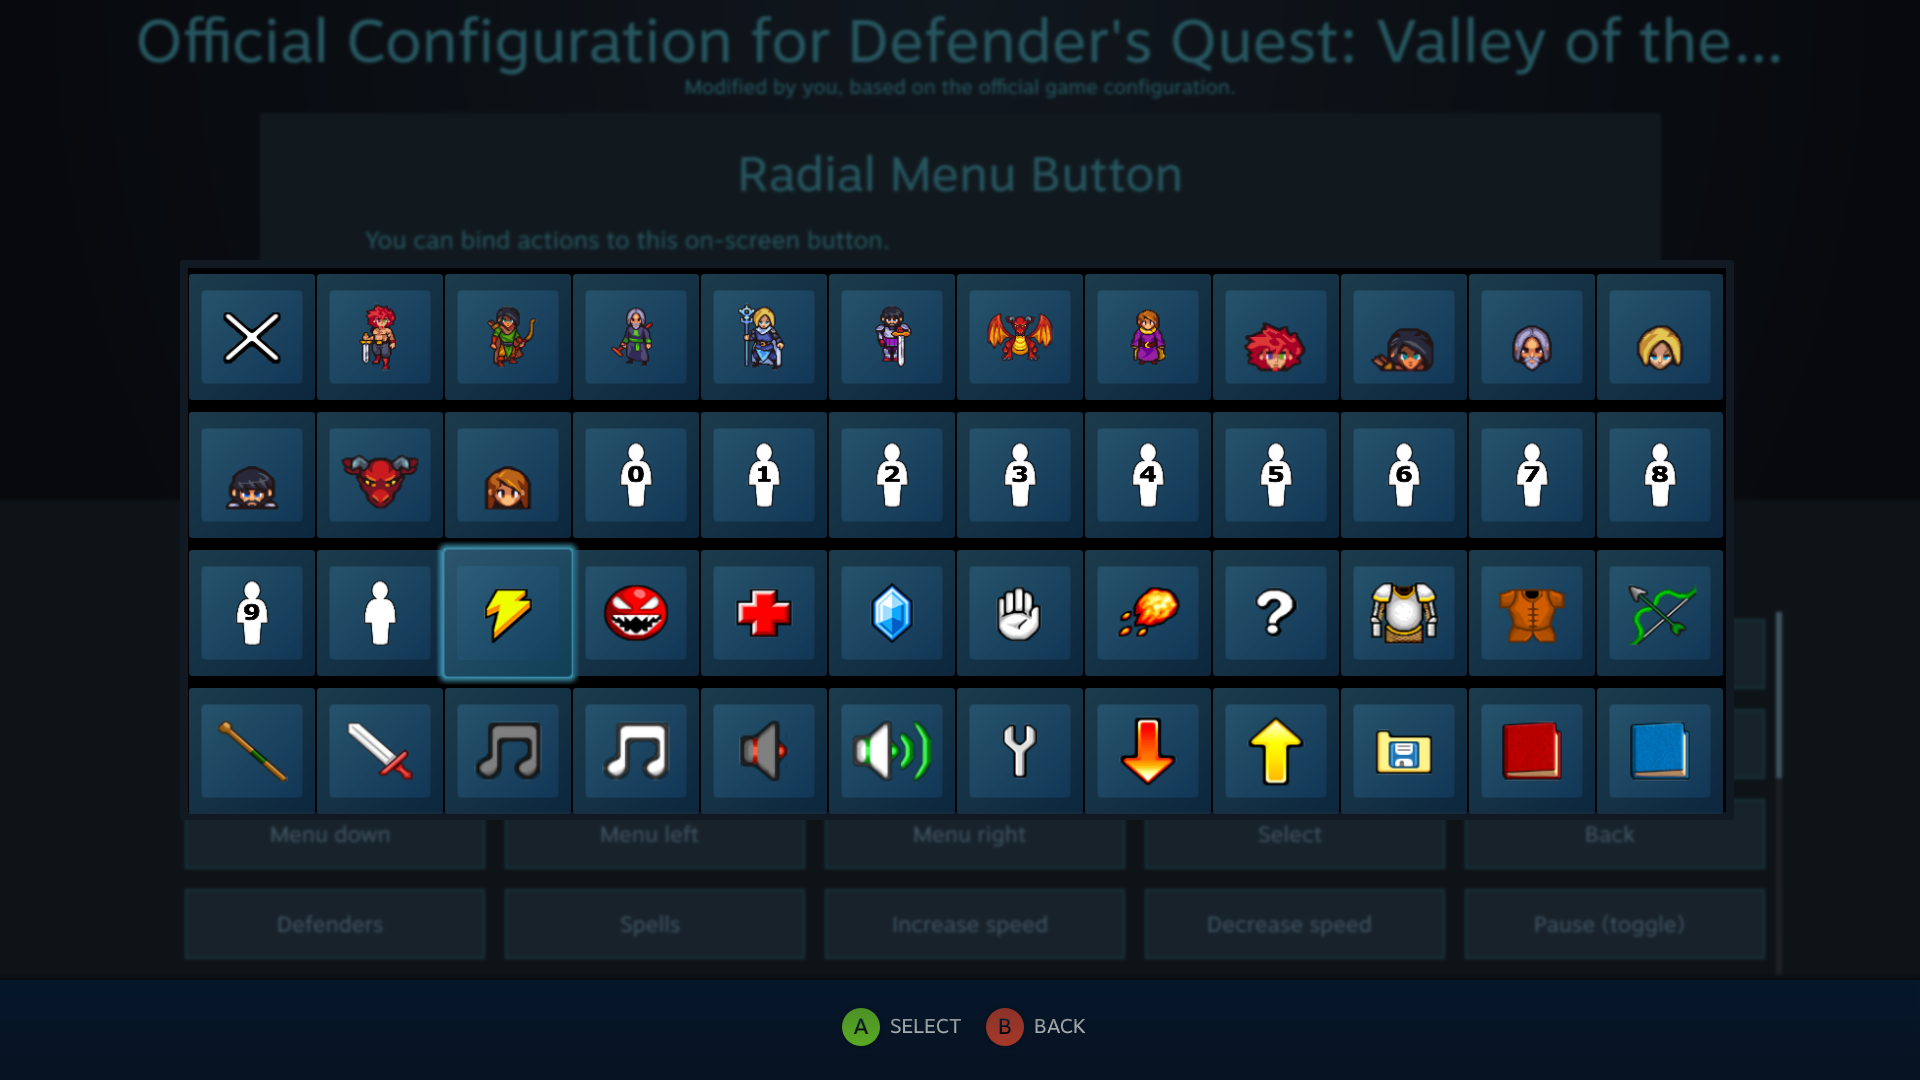 Defender's Quest Steam Controller Configuration Screen -- Selecting a custom icon for a radial menu